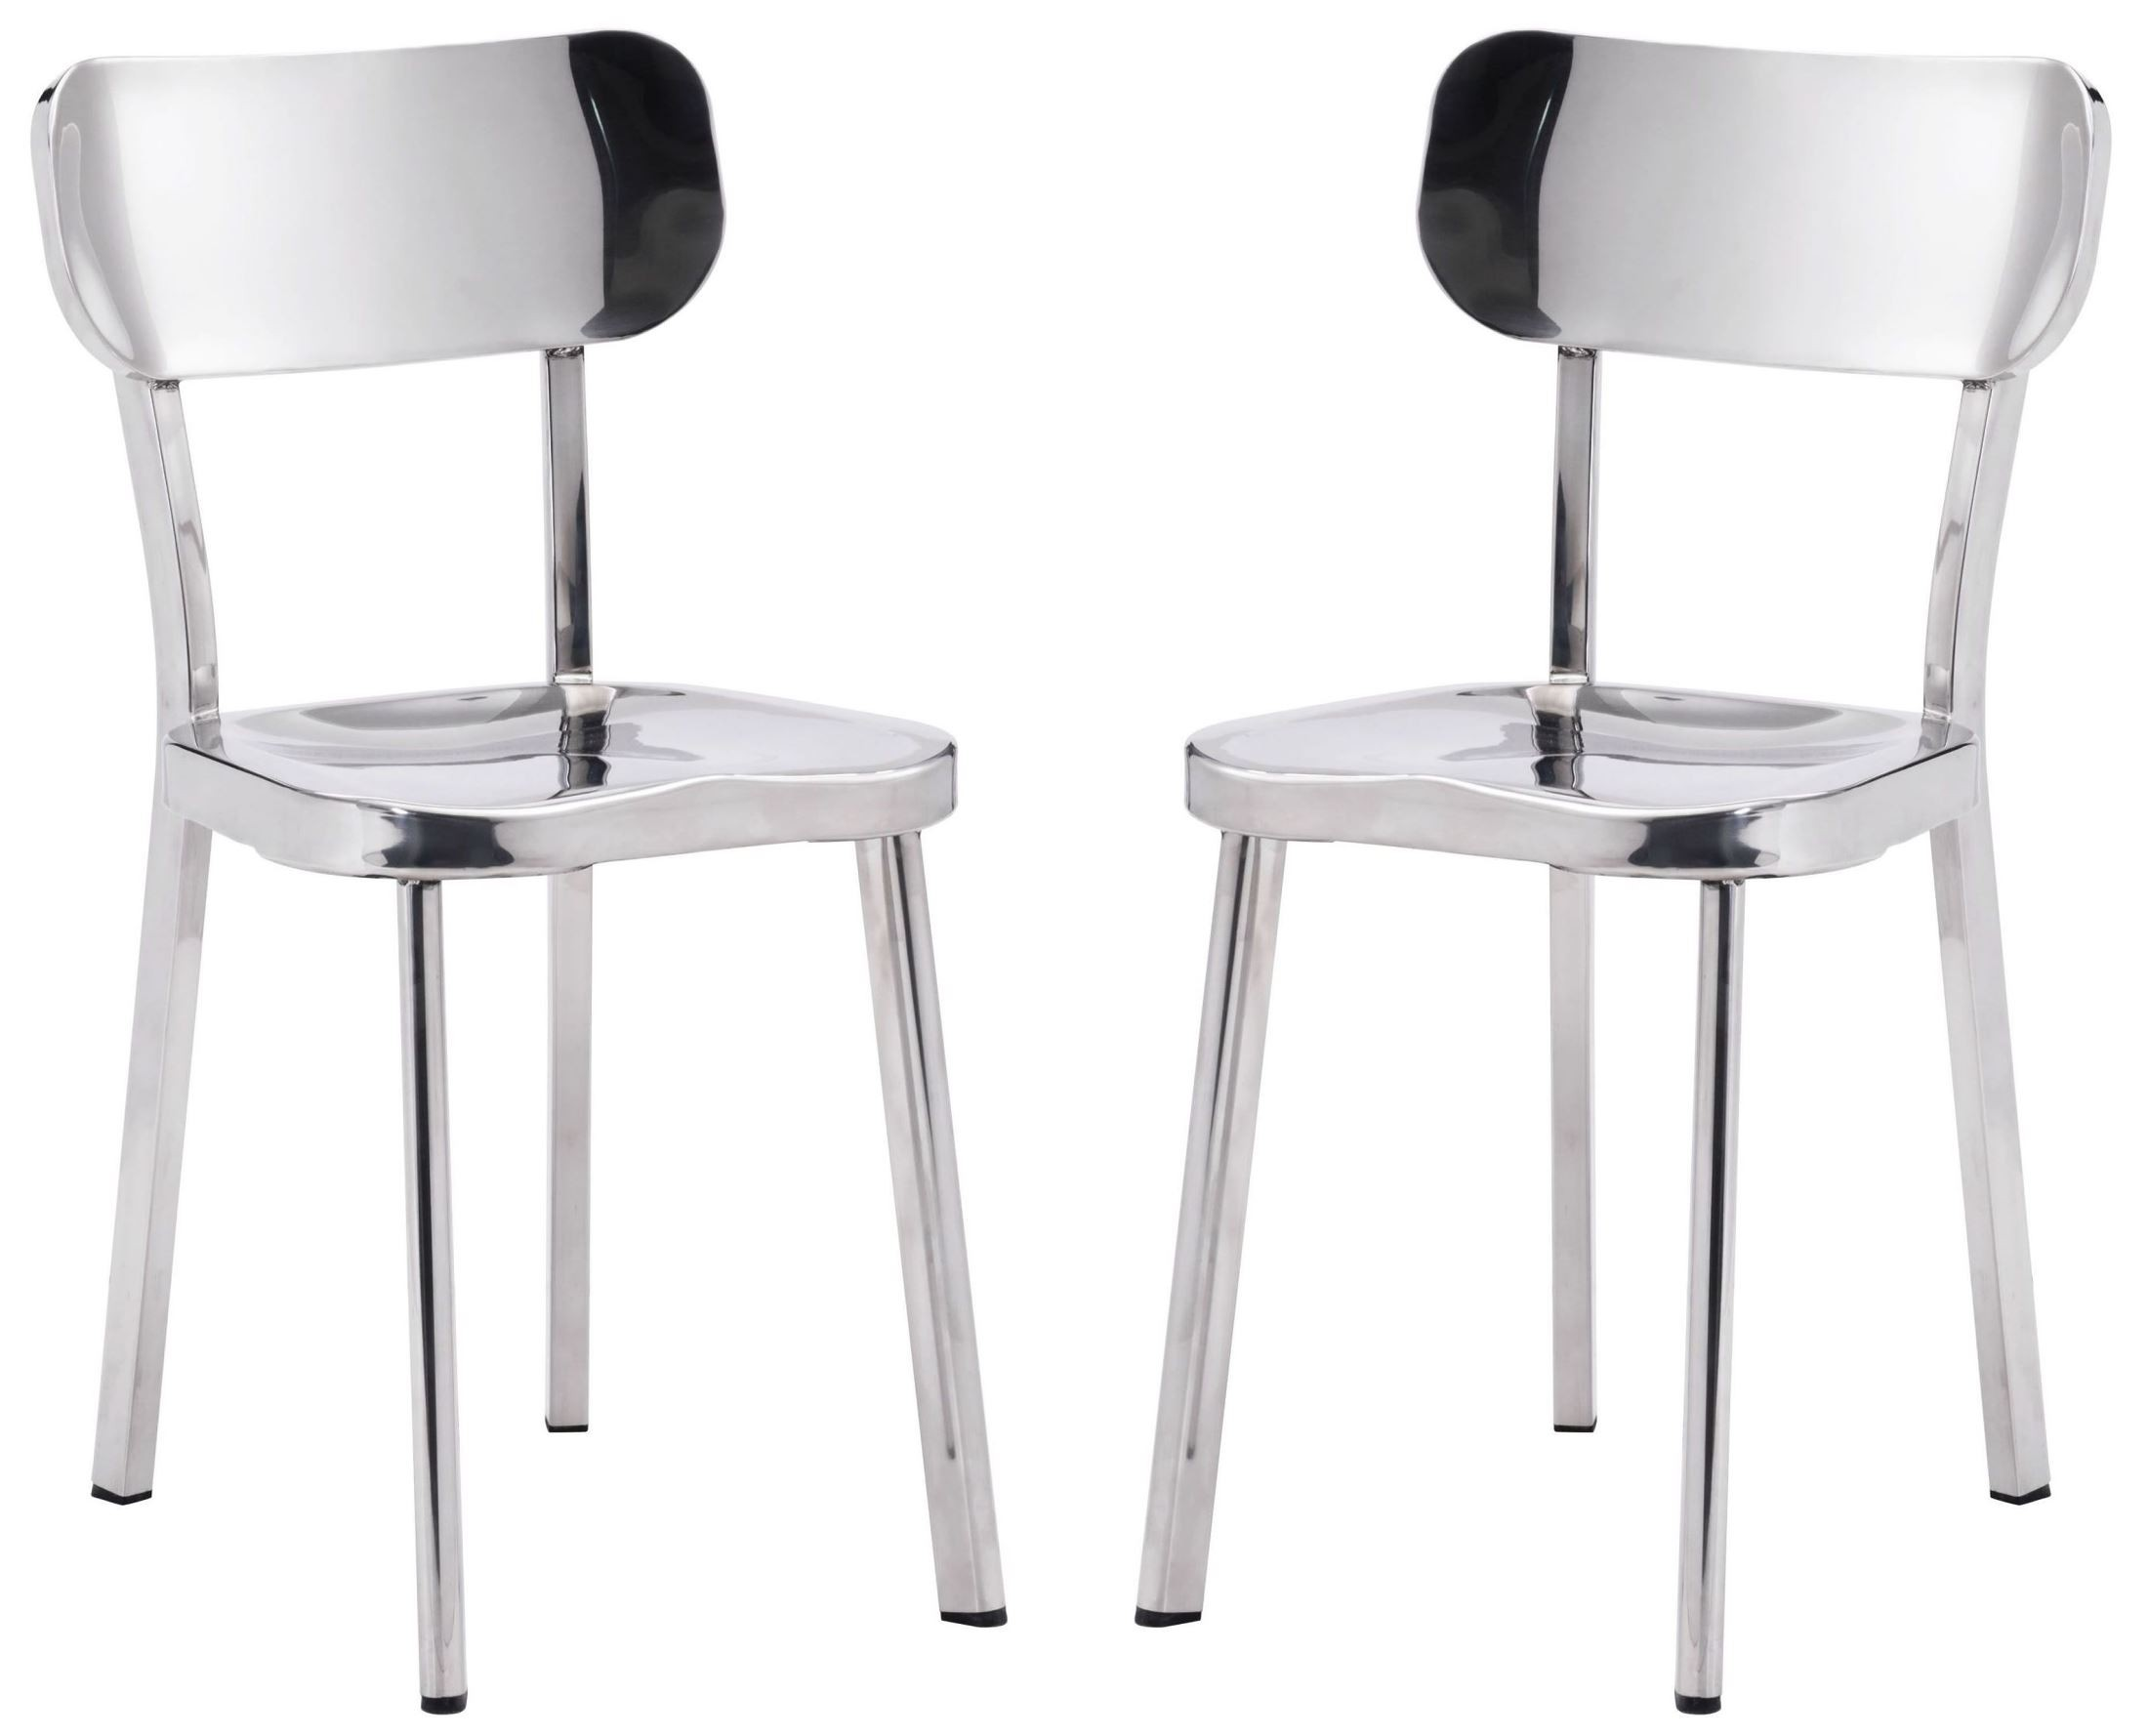 stainless steel dining room chairs | Winter Polished Stainless Steel Dining Chair Set of 2 from ...